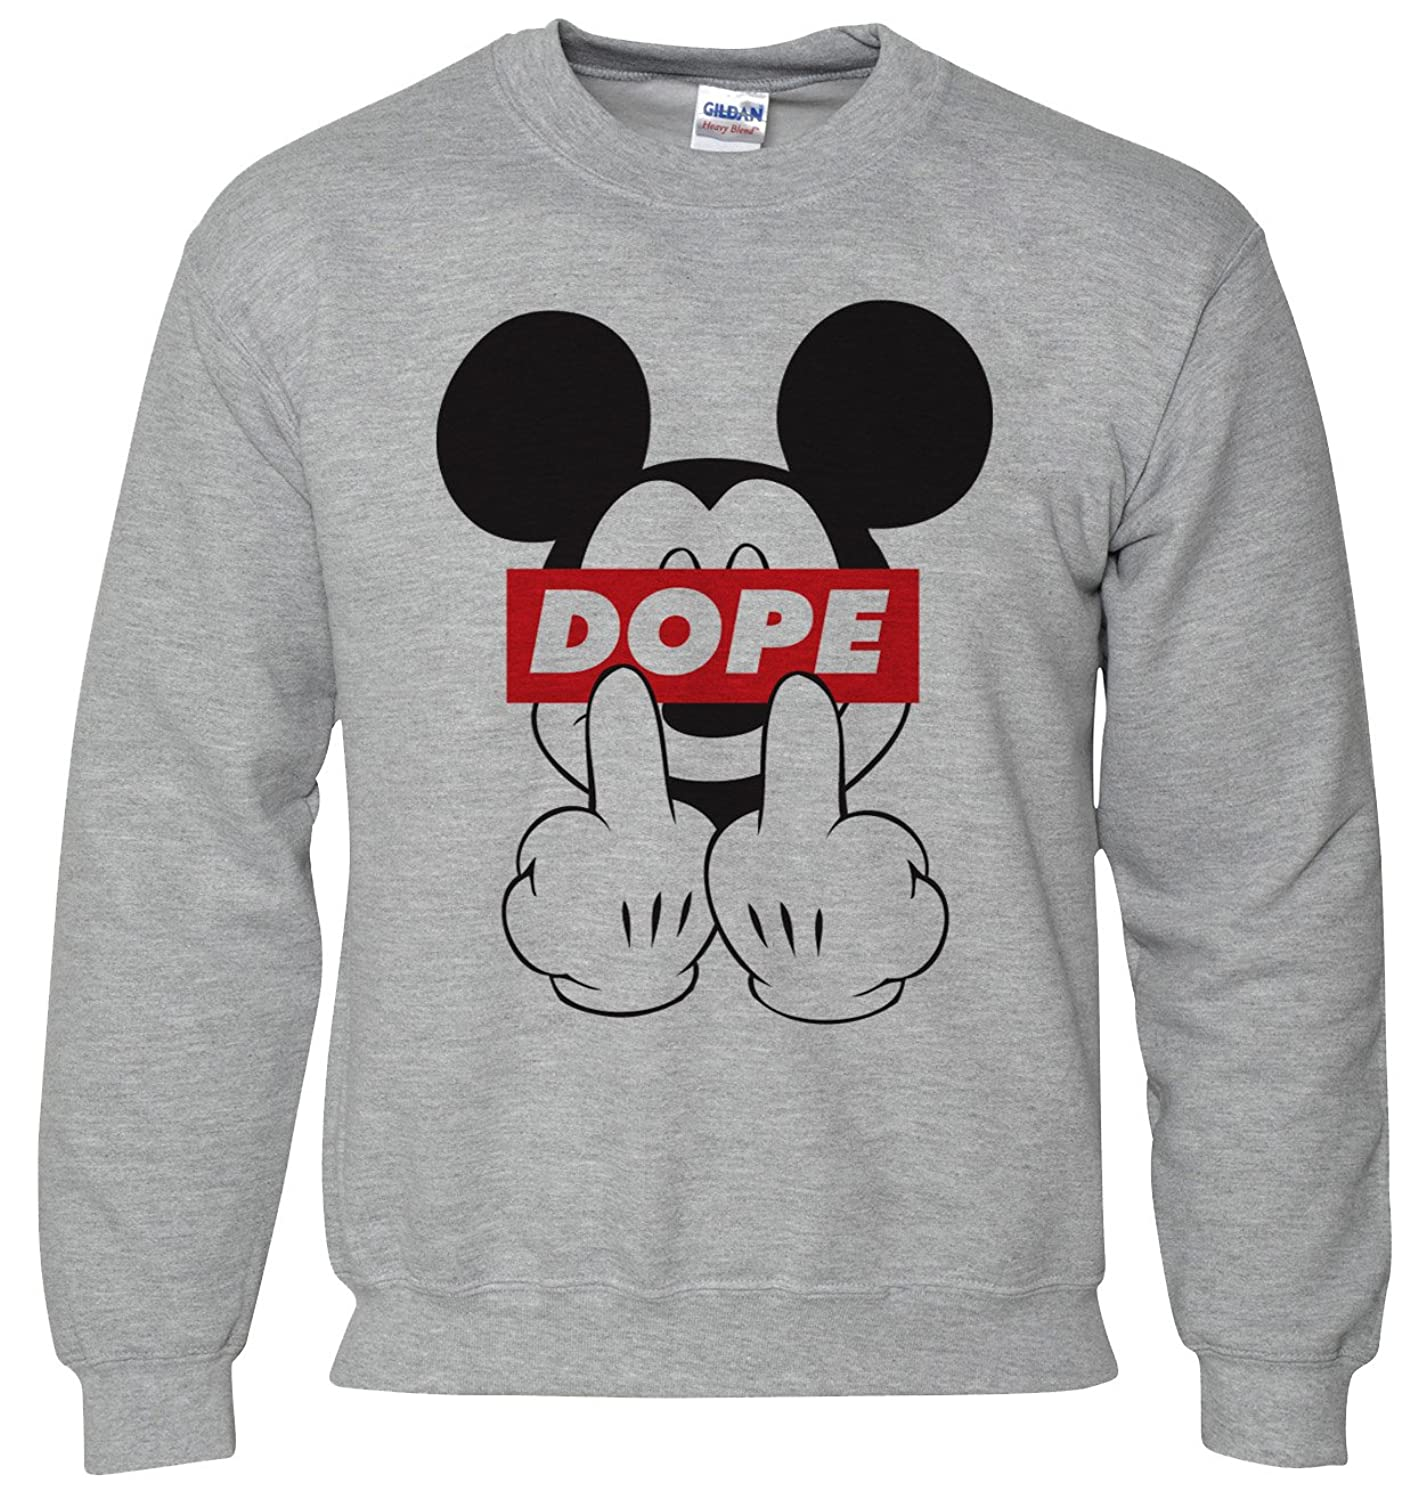 MICKEY MOUSE DOPE SUPREME JUMPER SWEATSHIRT SWEATER 42 44